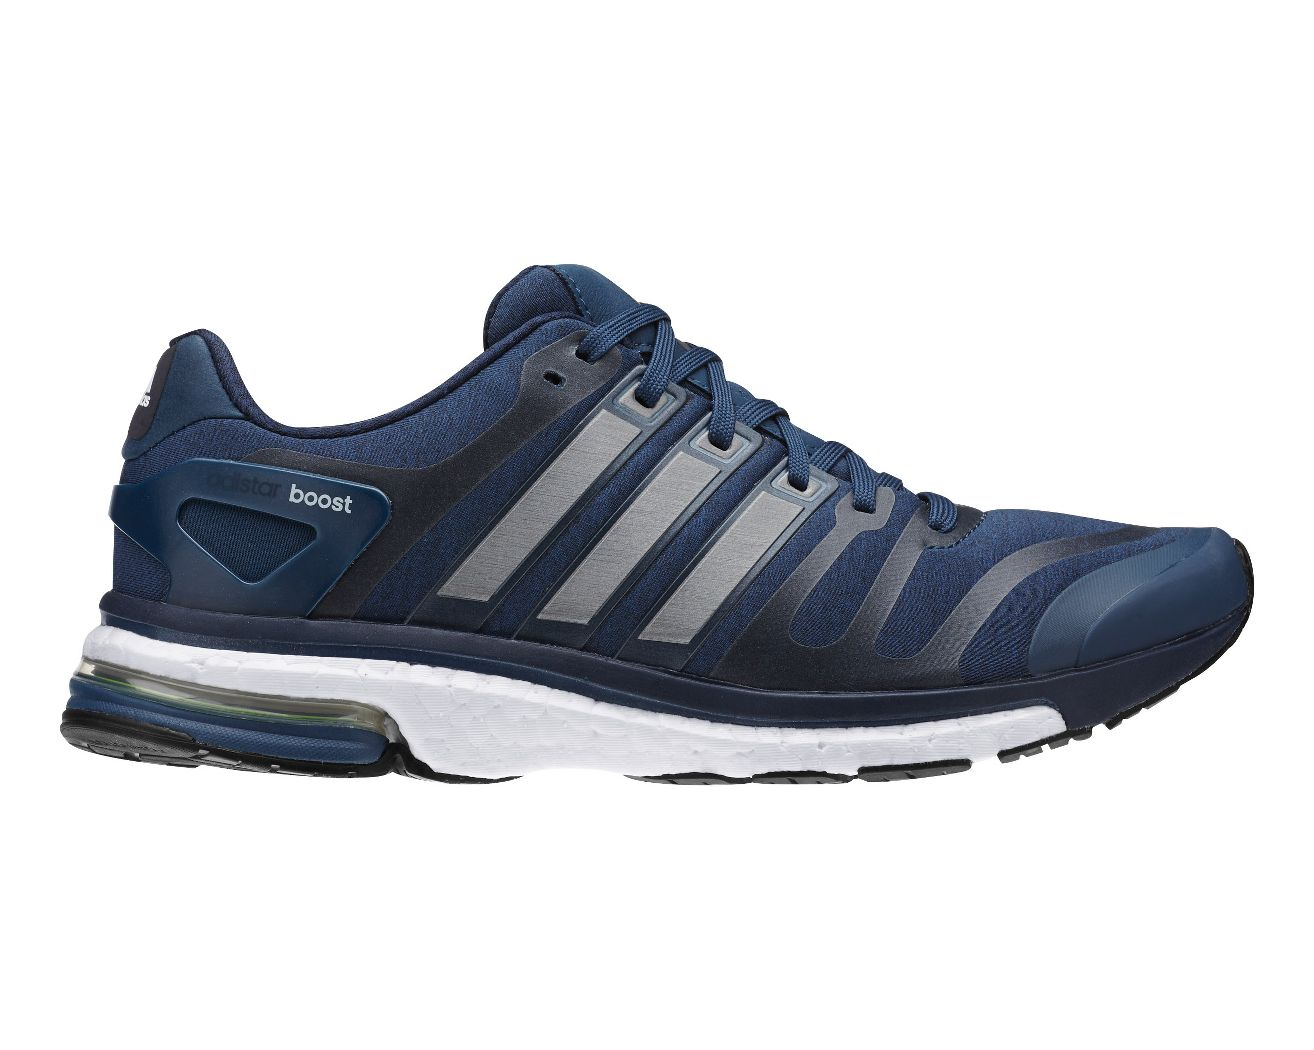 adidas adistar boost running shoes mens. Black Bedroom Furniture Sets. Home Design Ideas